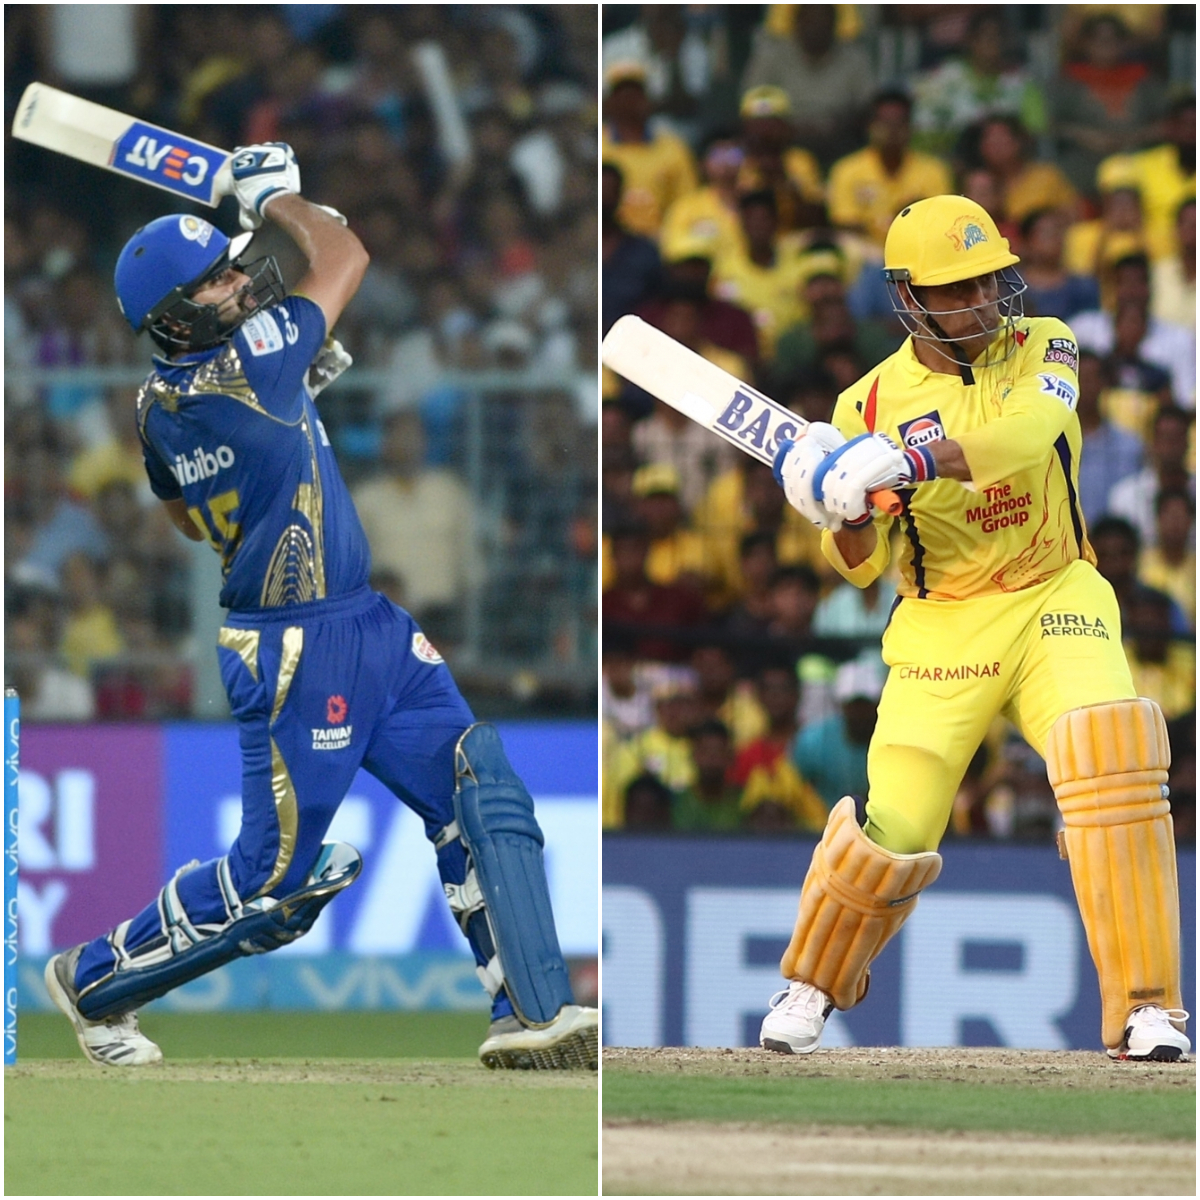 MI handed CSK their first loss of the season in their previous meeting at Wankhede Stadium